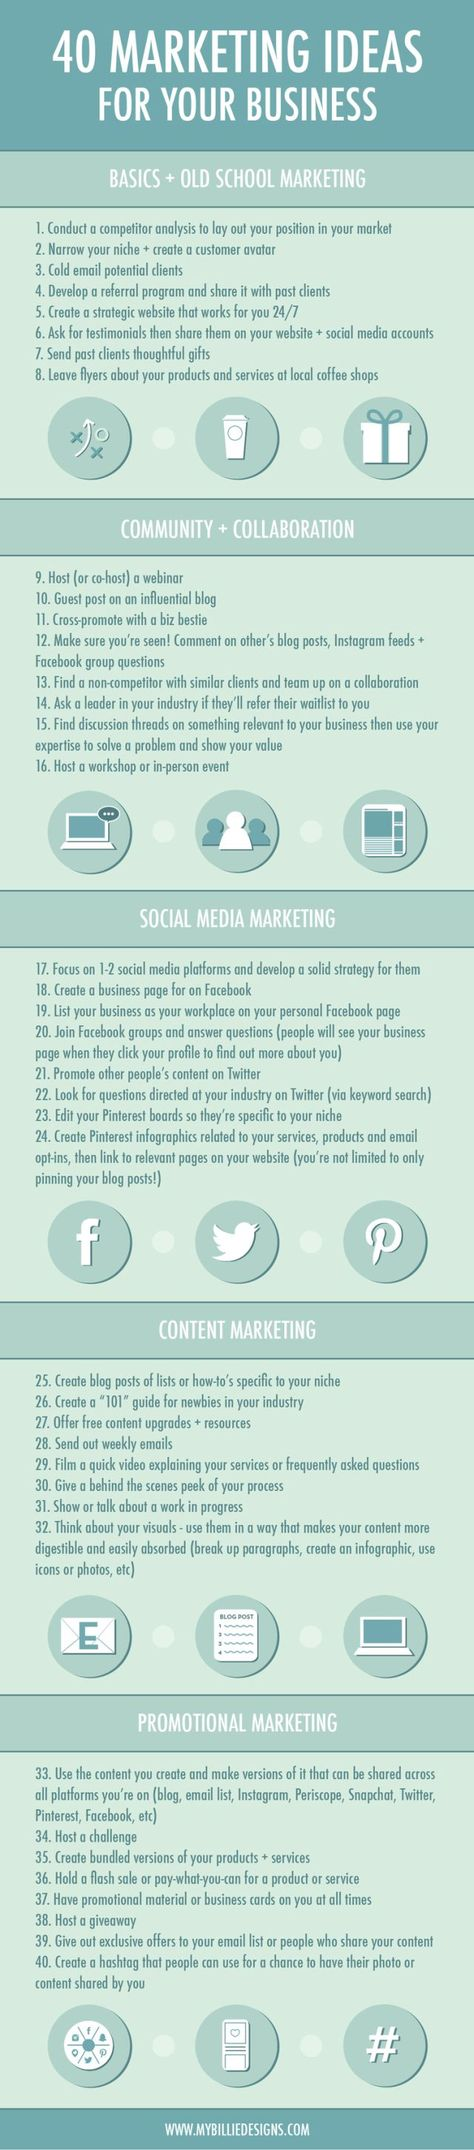 40 Marketing Ideas for Your Small Business [Infographic]